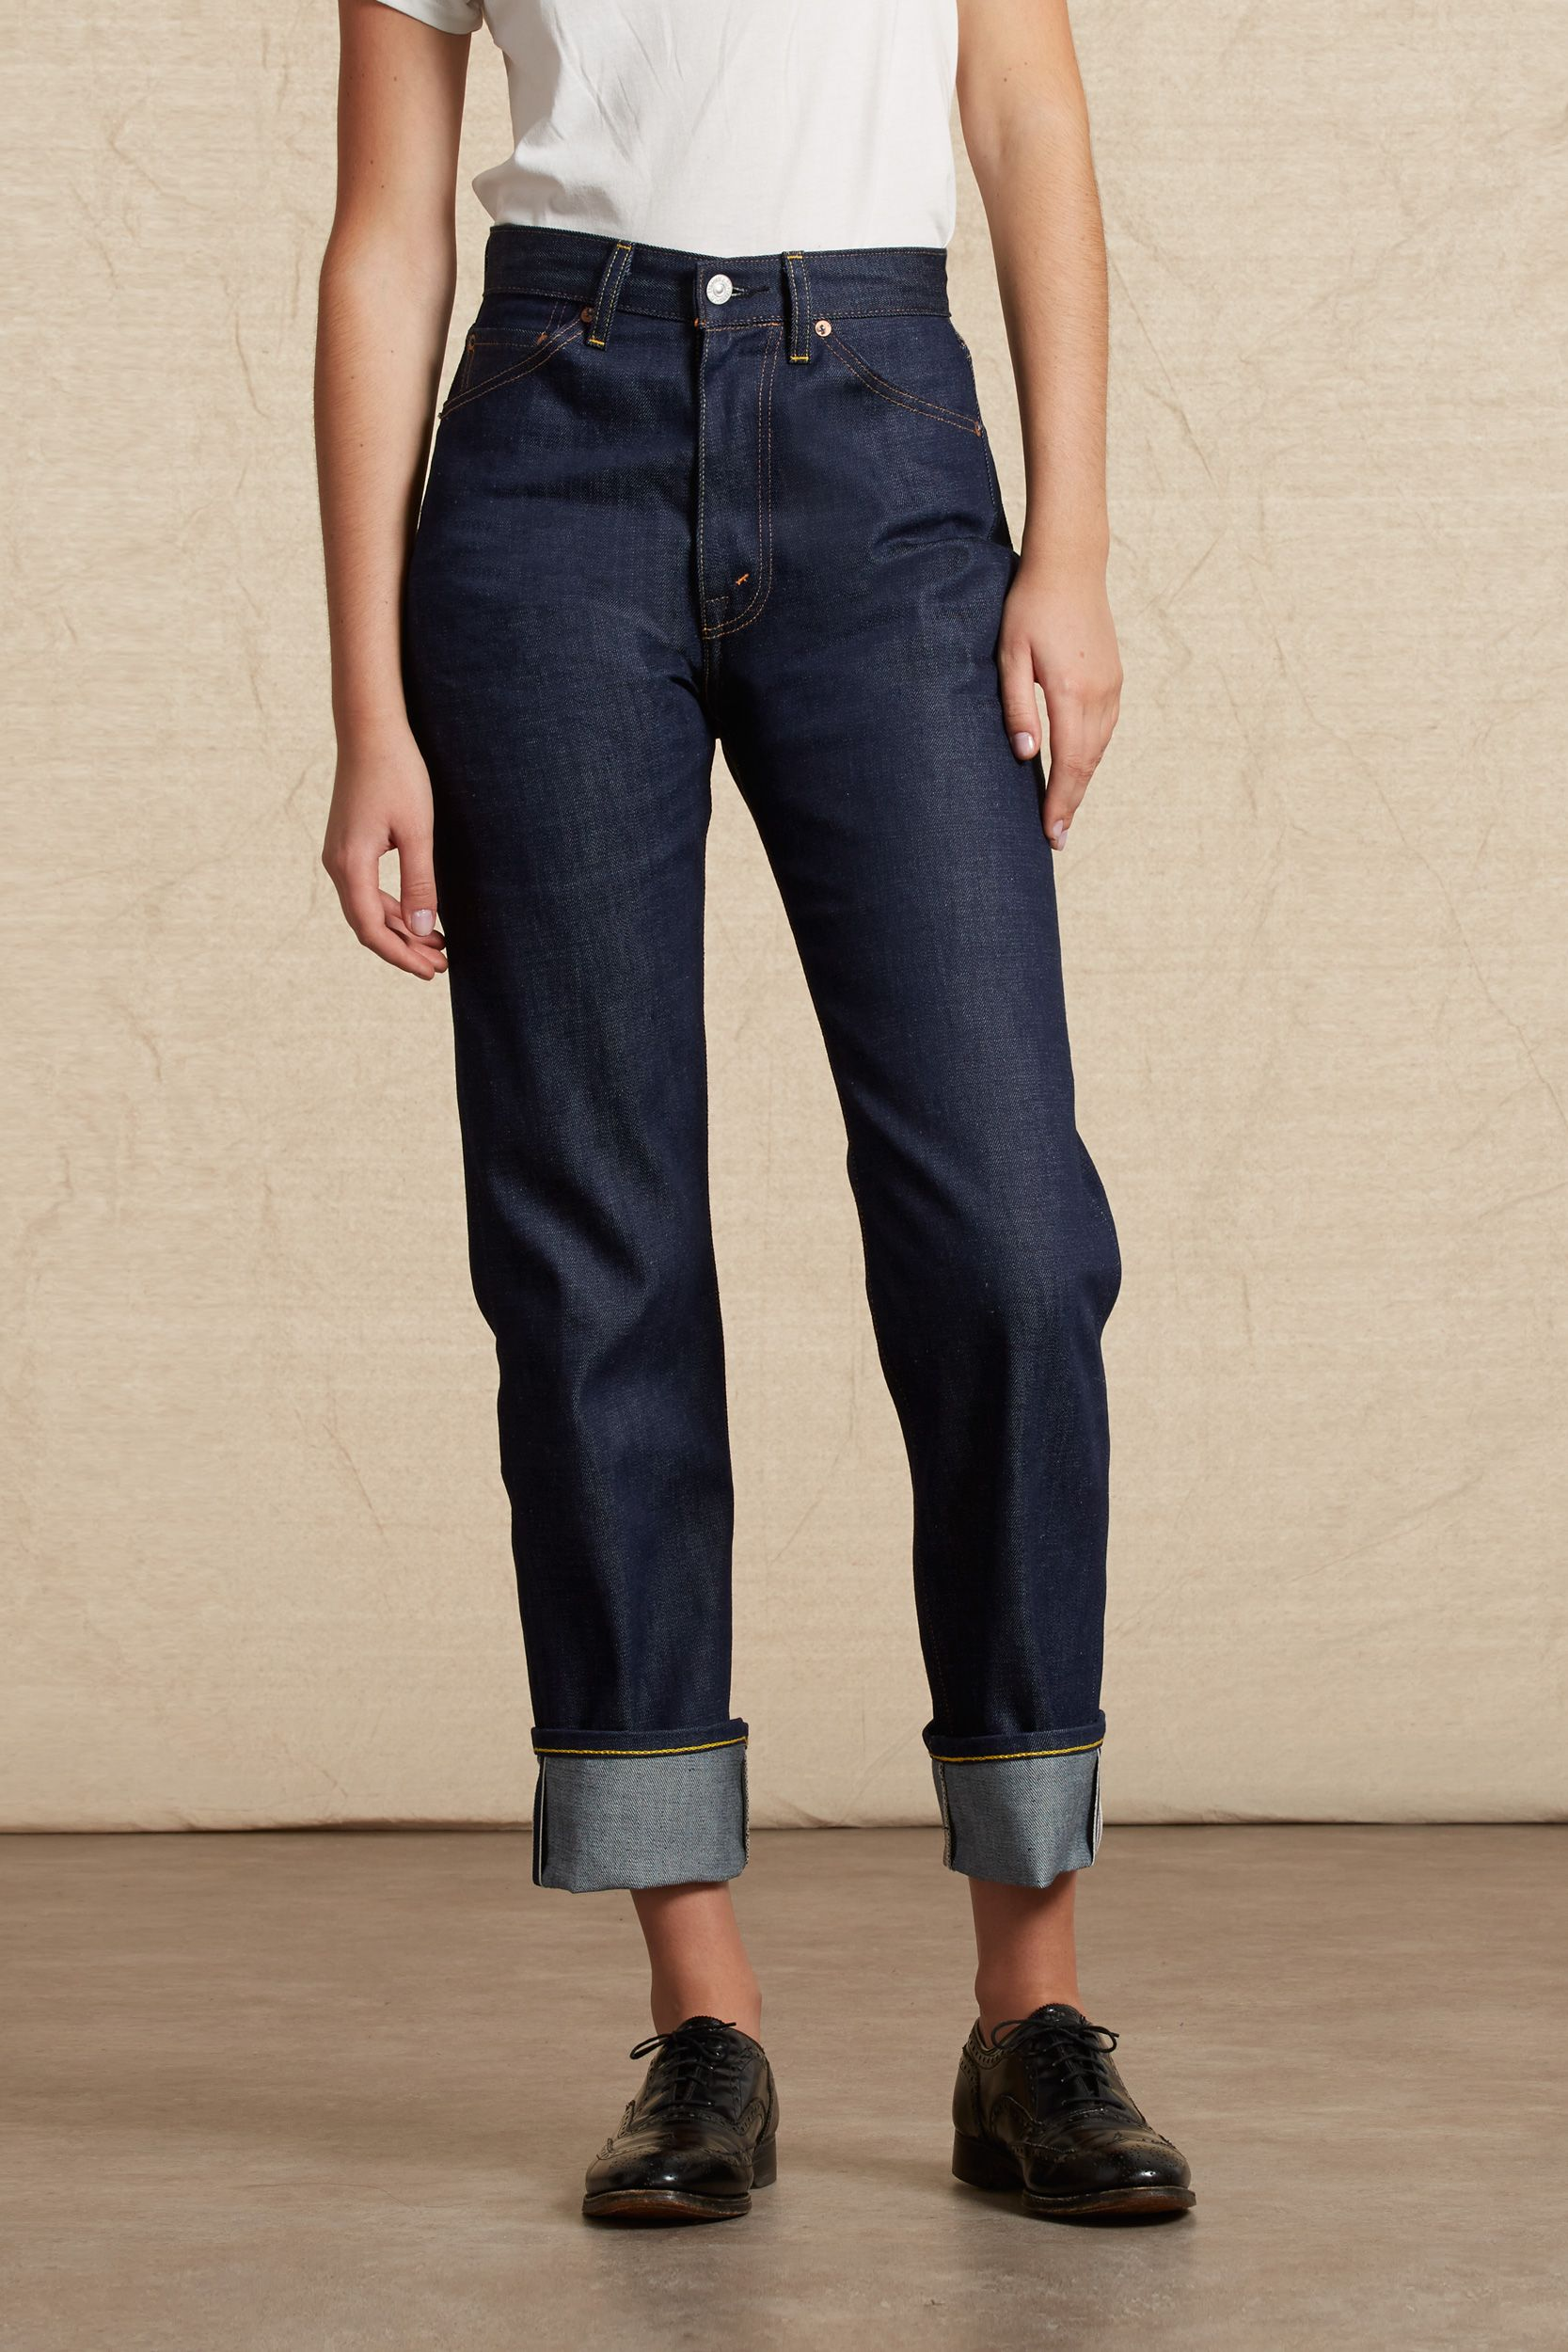 613ebe5d1f0 1950′S 701® JEANS | Levi's Vintage Clothing | 1950s Style Clothing ...